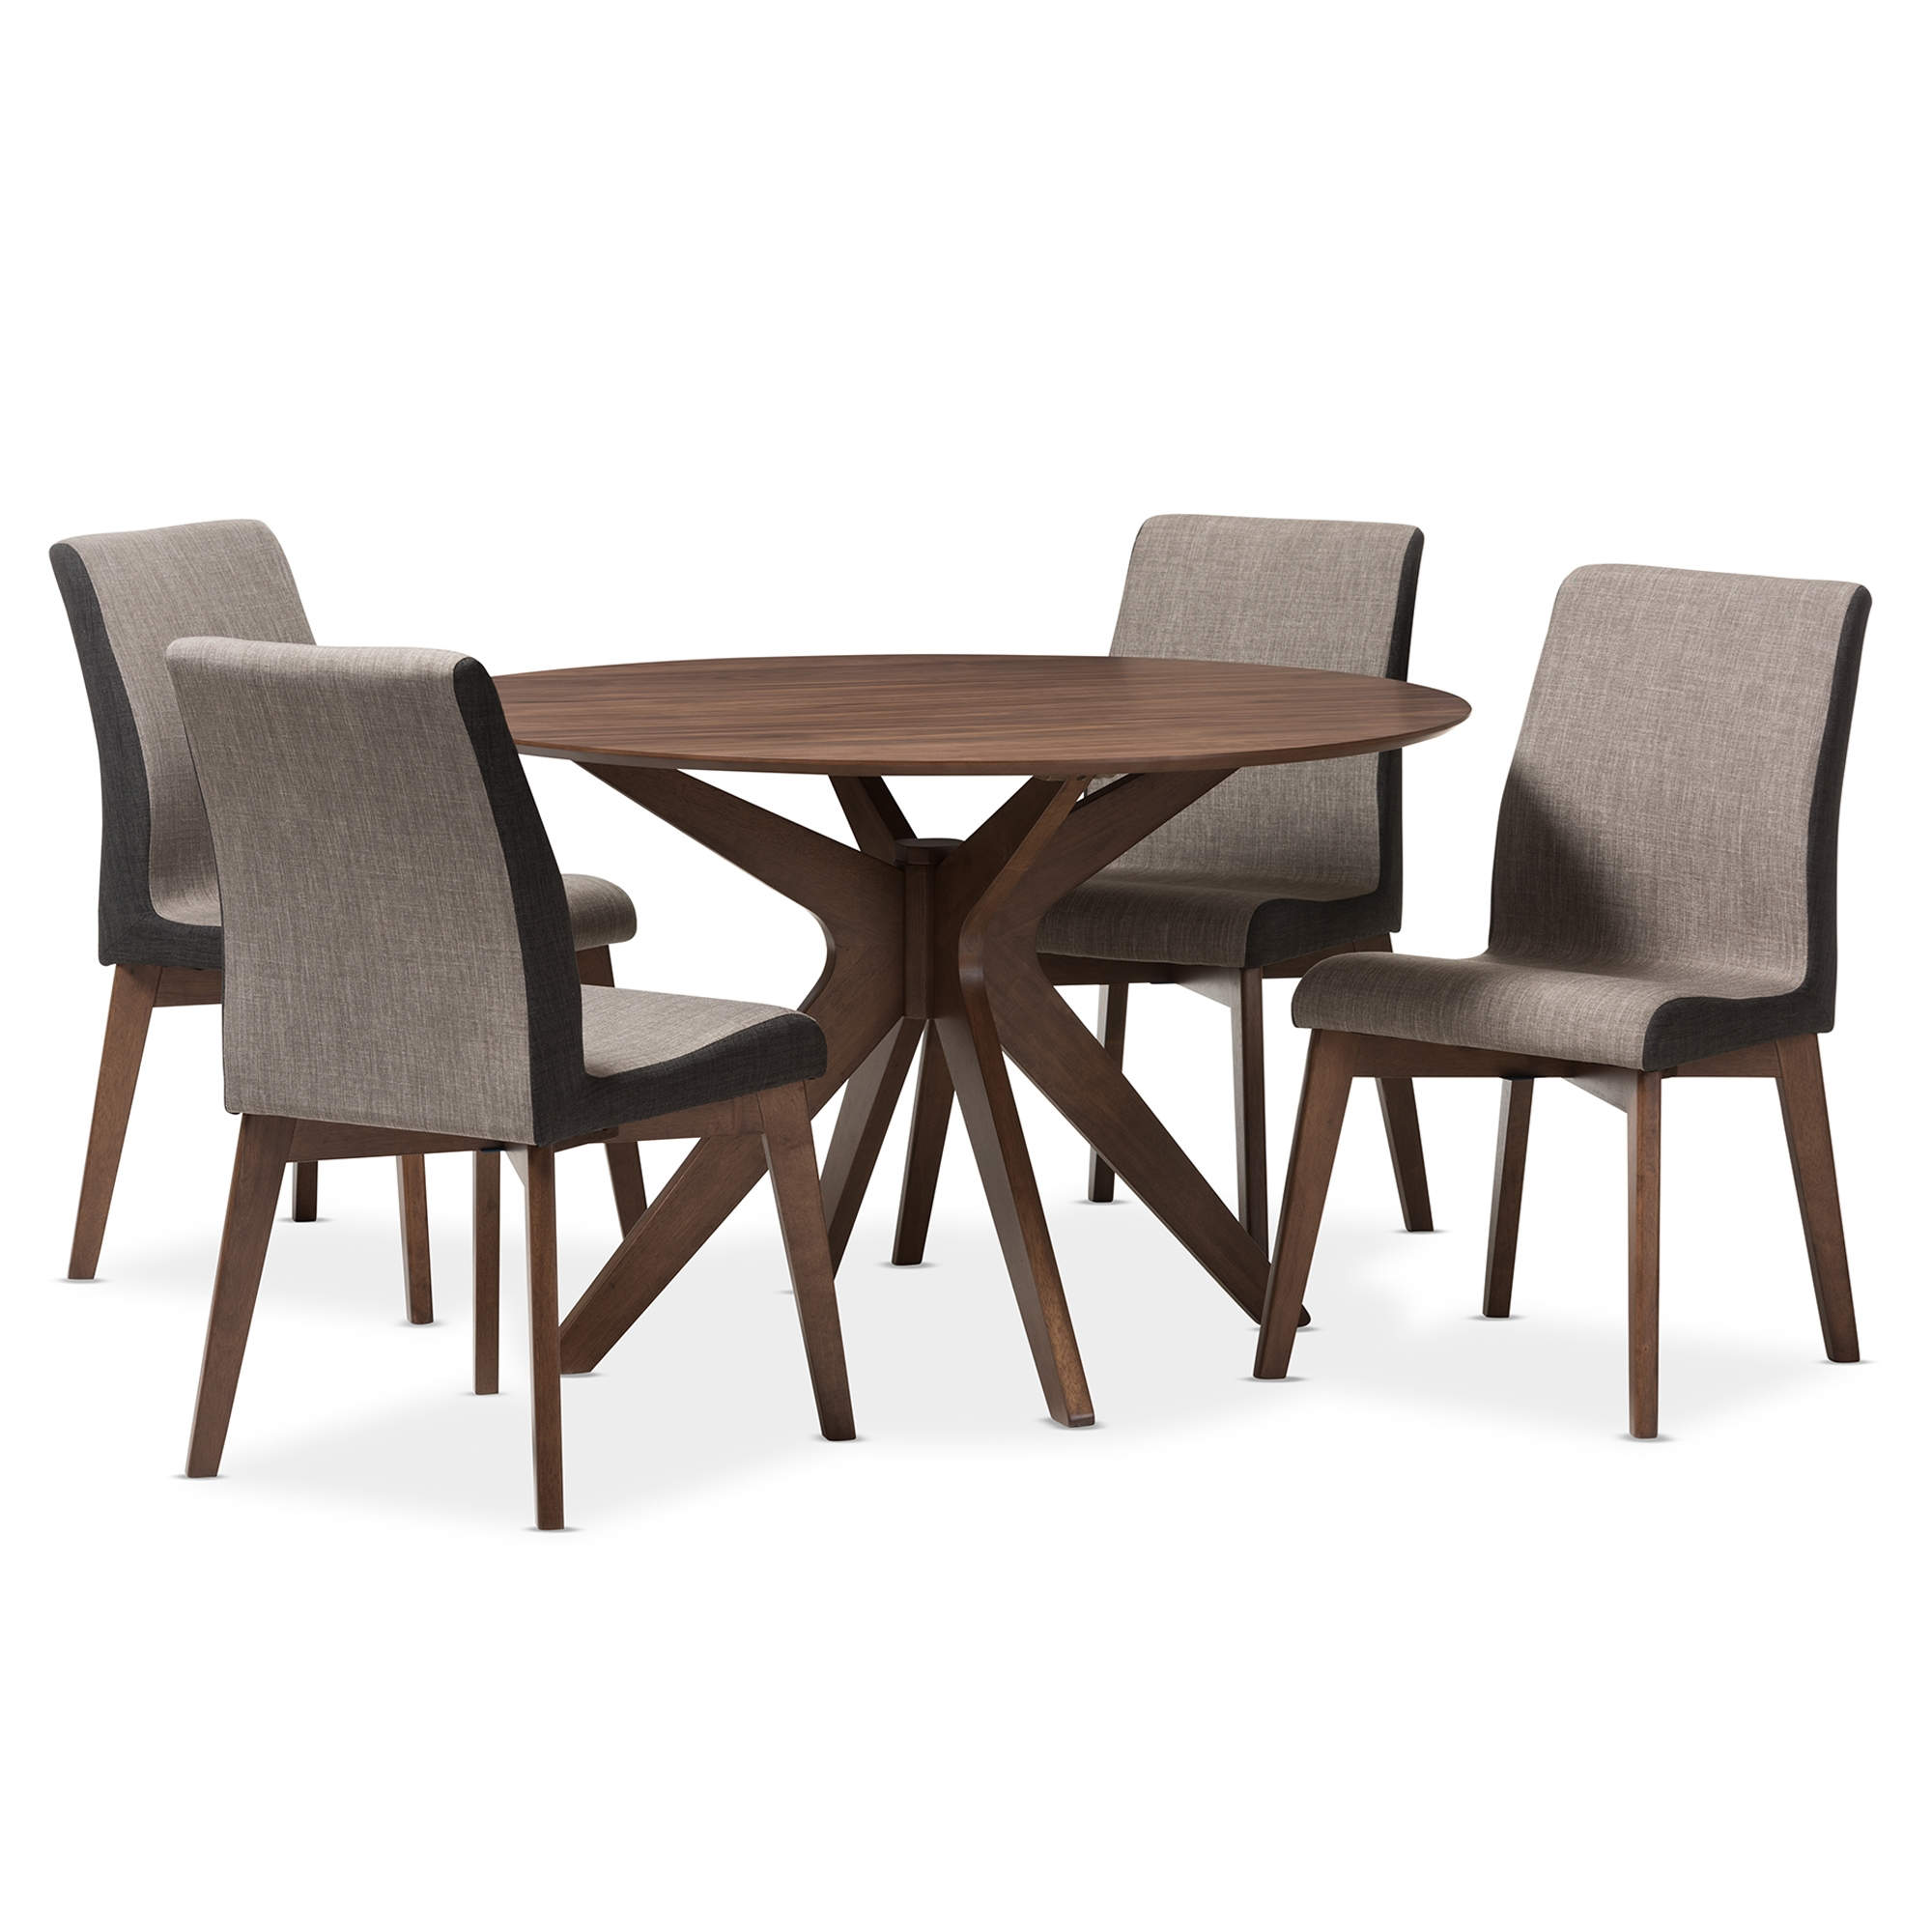 Baxton Studio Kimberly Mid Century Modern Walnut Wood Round 5 Piece Dining  Set ...